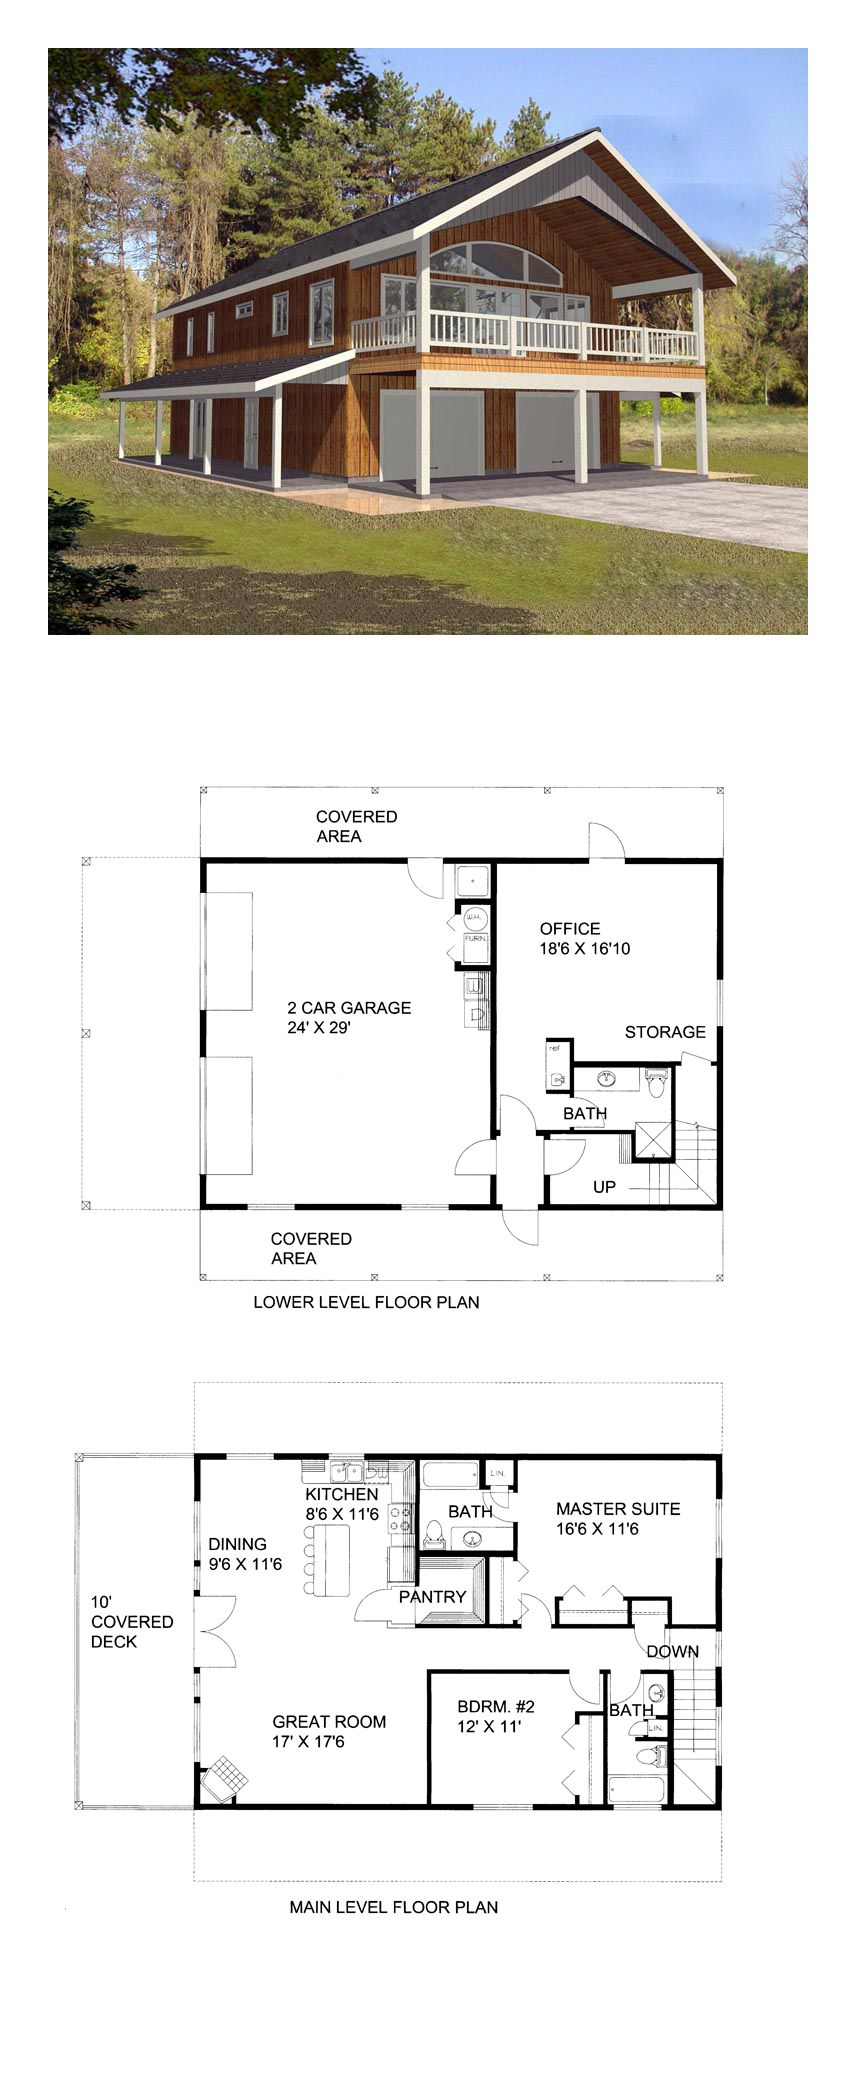 Garage apartment plan 85372 total living area 1901 sq for Sq ft of 2 car garage